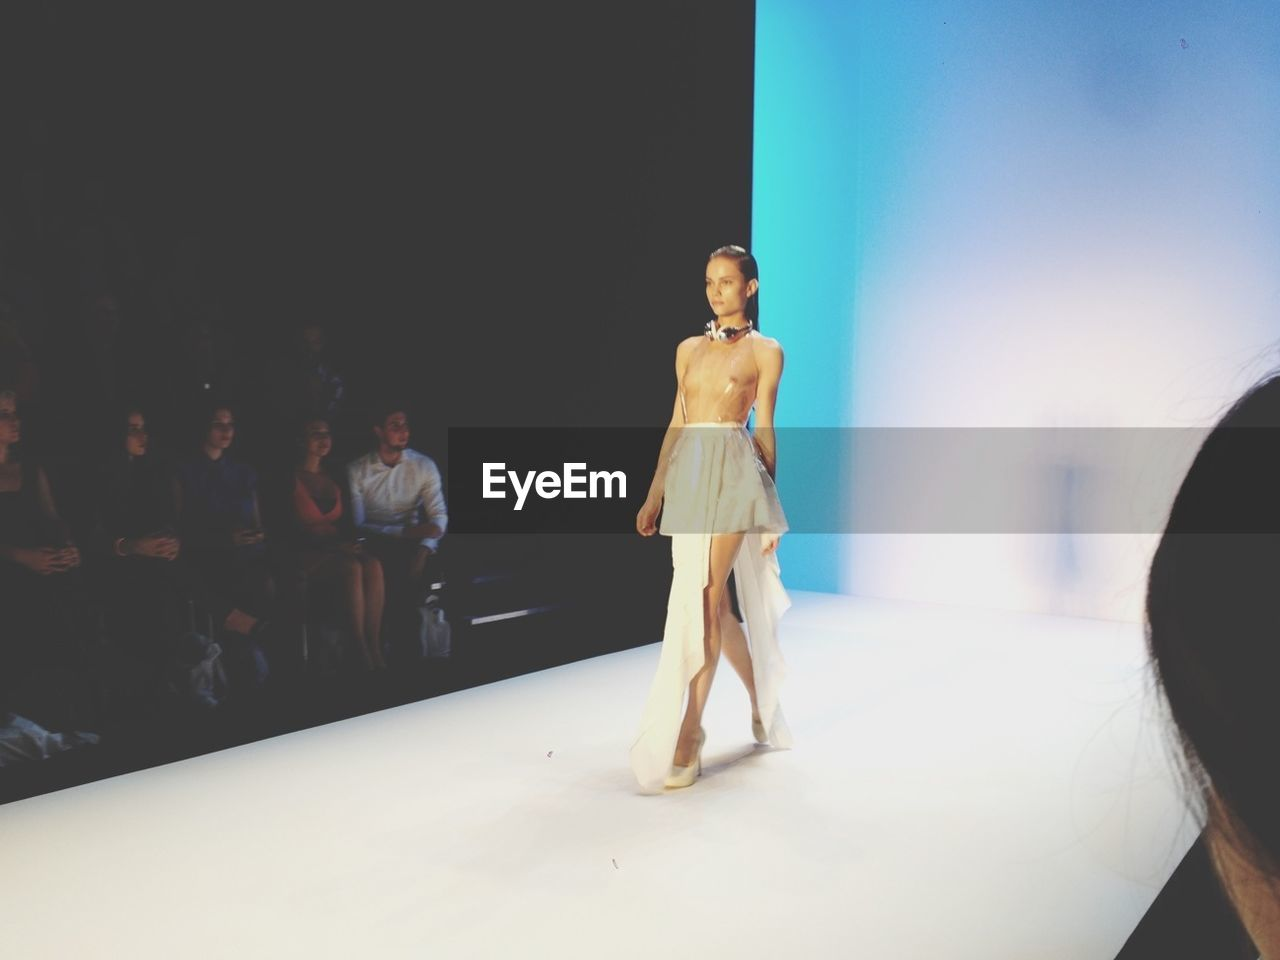 full length, indoors, real people, standing, fashion show, performance, young adult, young women, stage - performance space, performing arts event, one person, fashion model, well-dressed, day, people